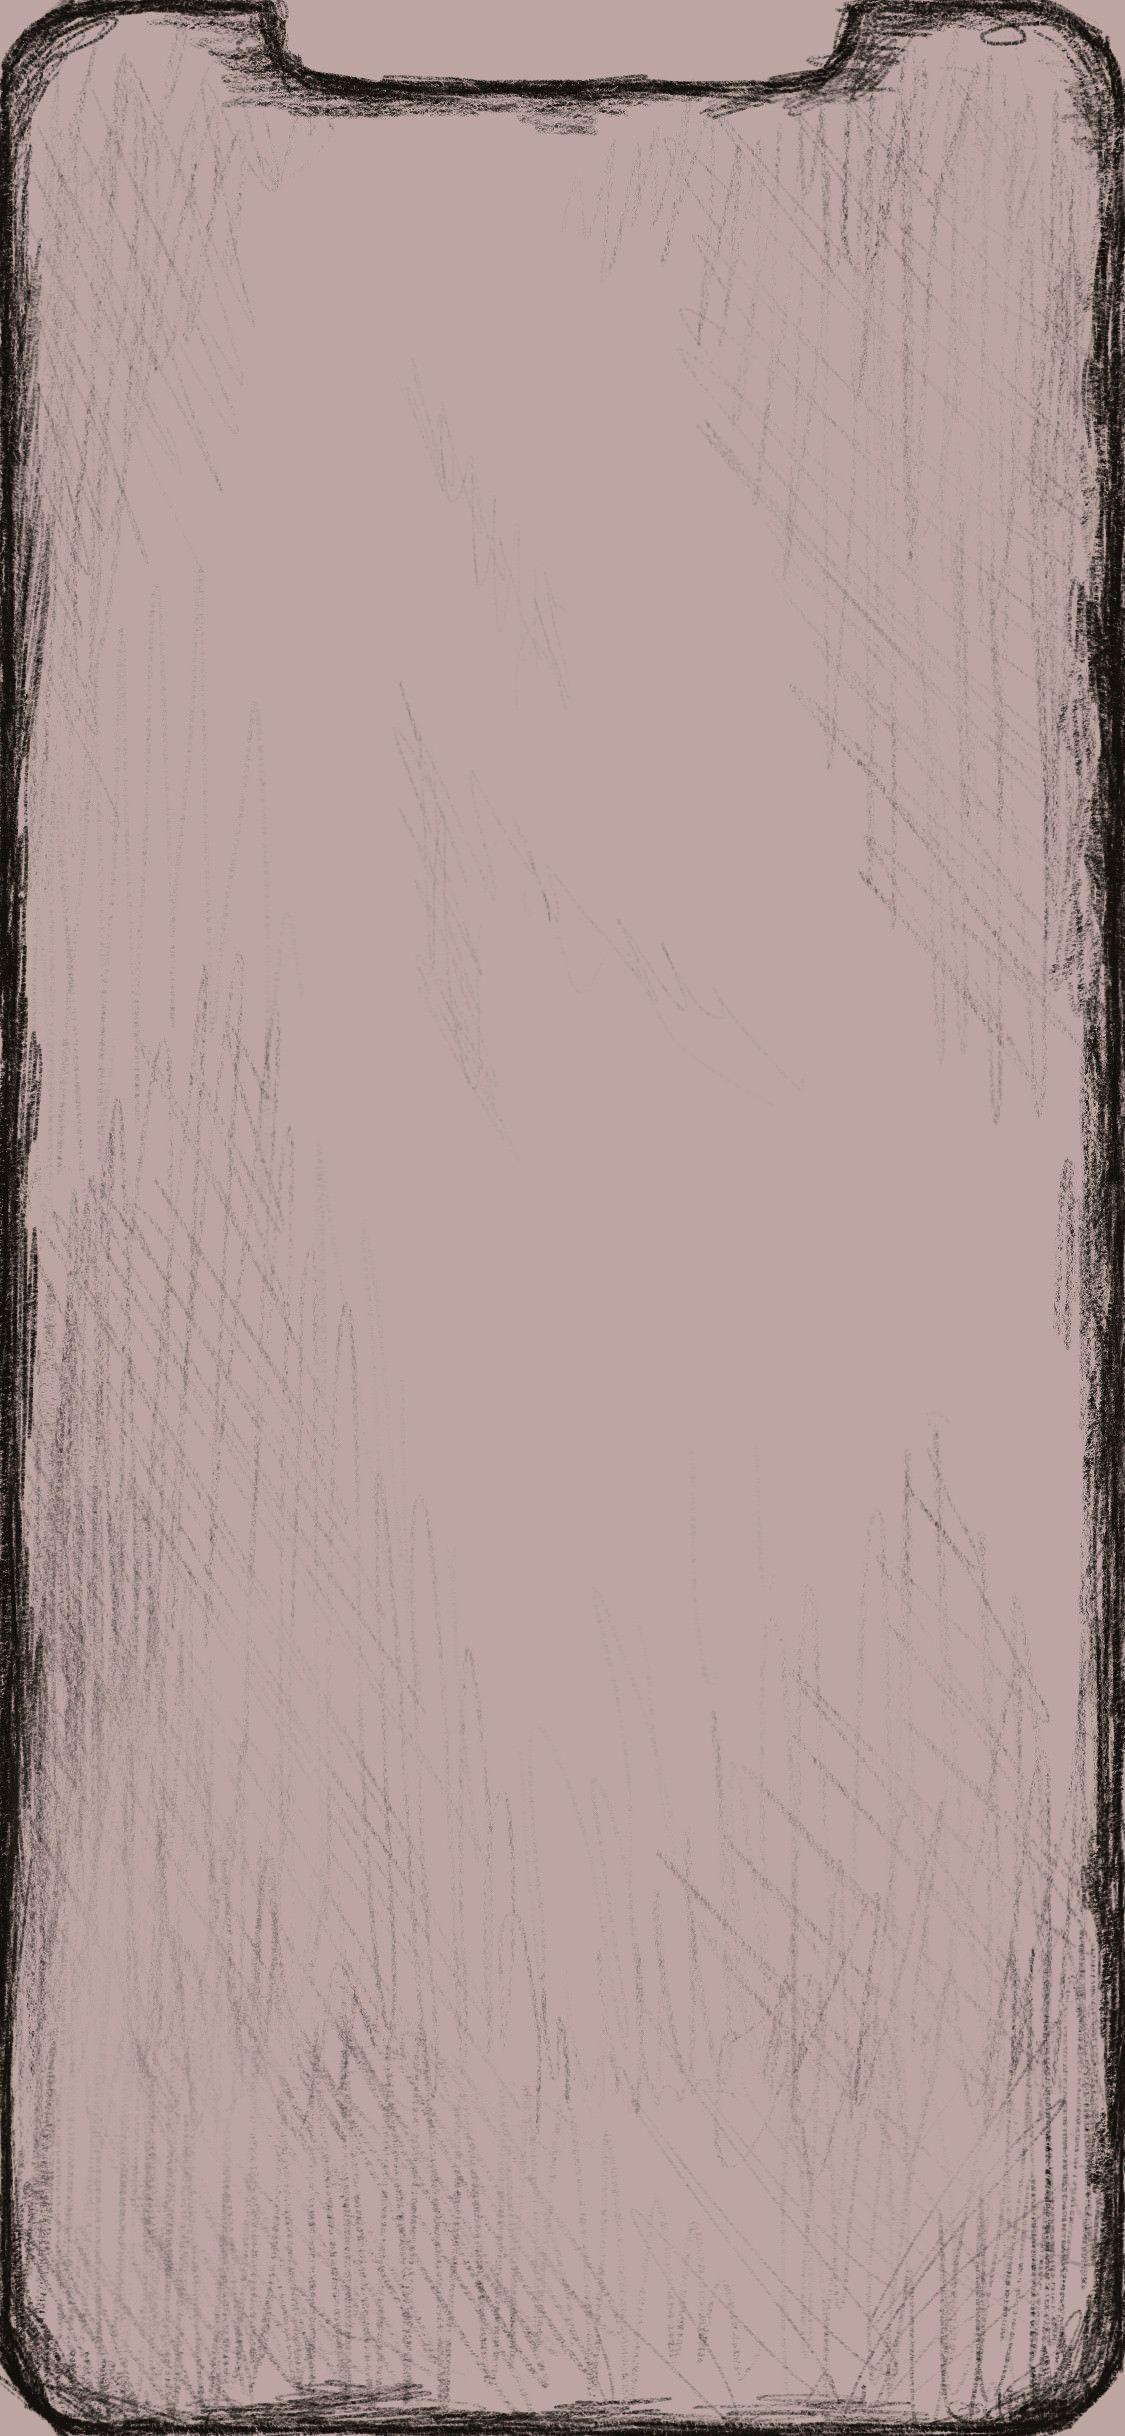 Sketched Border Wallpaper For Xs Max Four Other Colors Iphone Wallpaper Iphone Wallpaper Images Iphone Homescreen Wallpaper